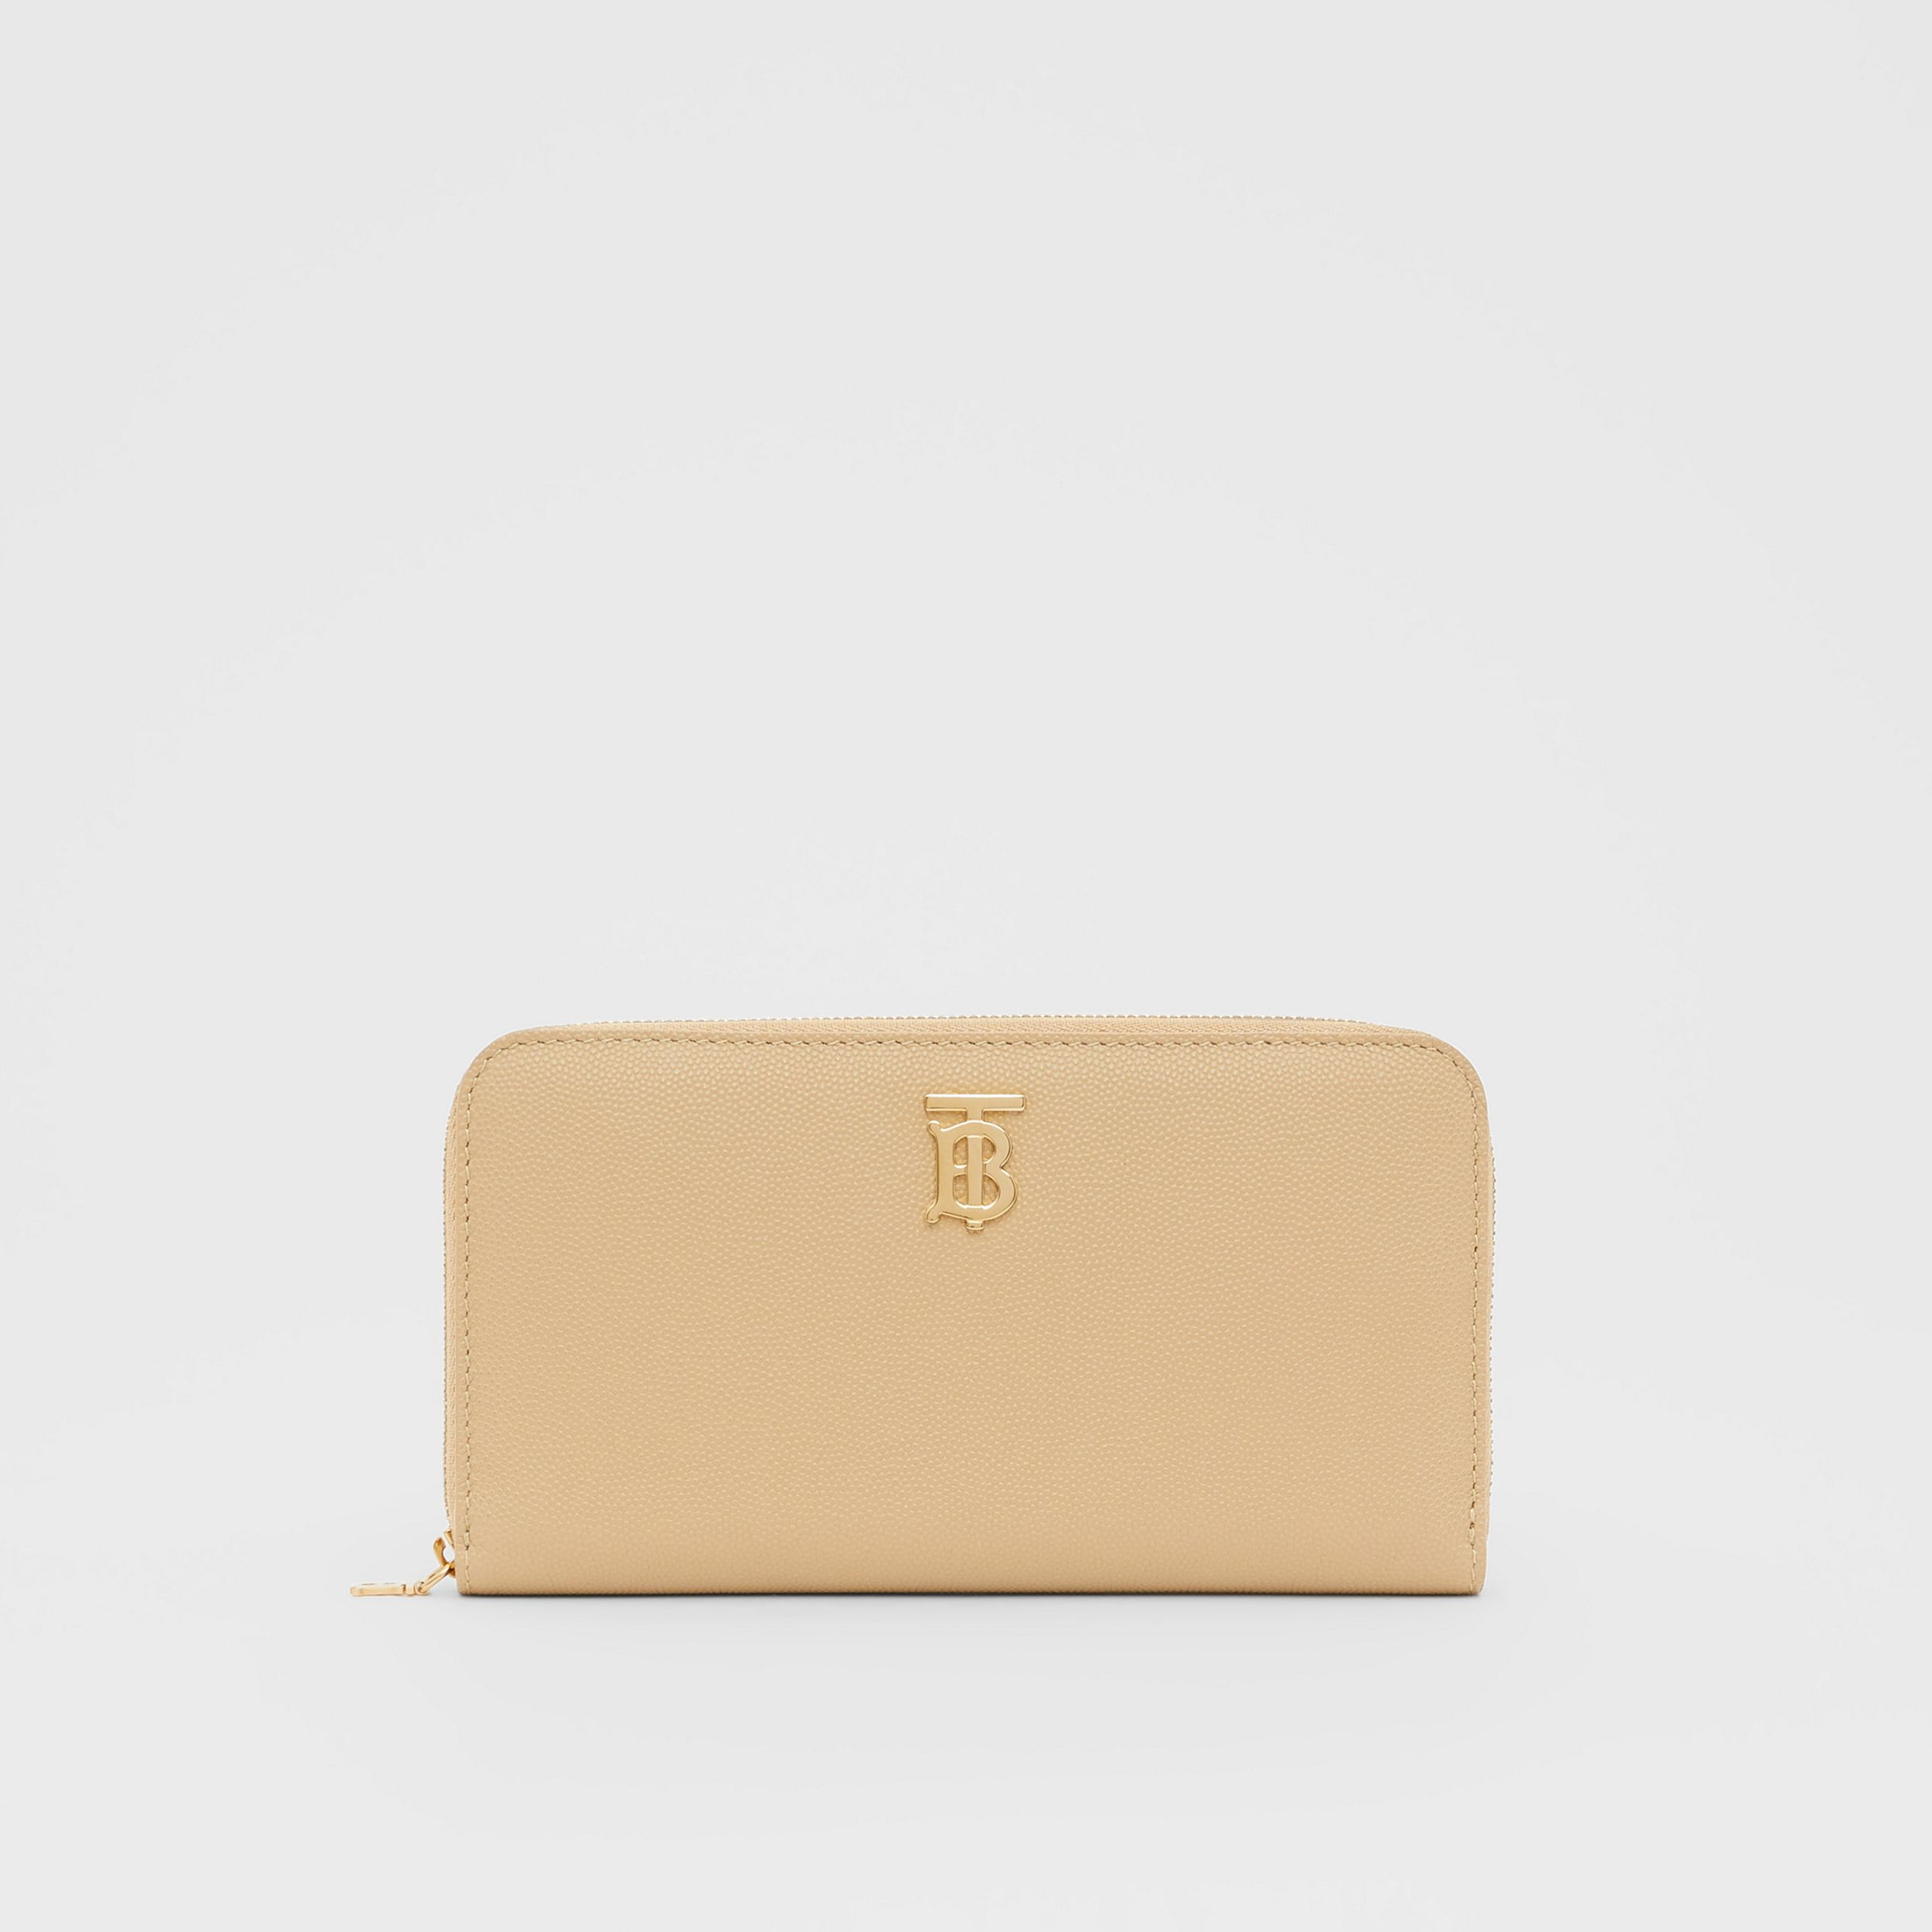 Monogram Motif Grainy Leather Ziparound Wallet in Archive Beige - Women | Burberry - 1